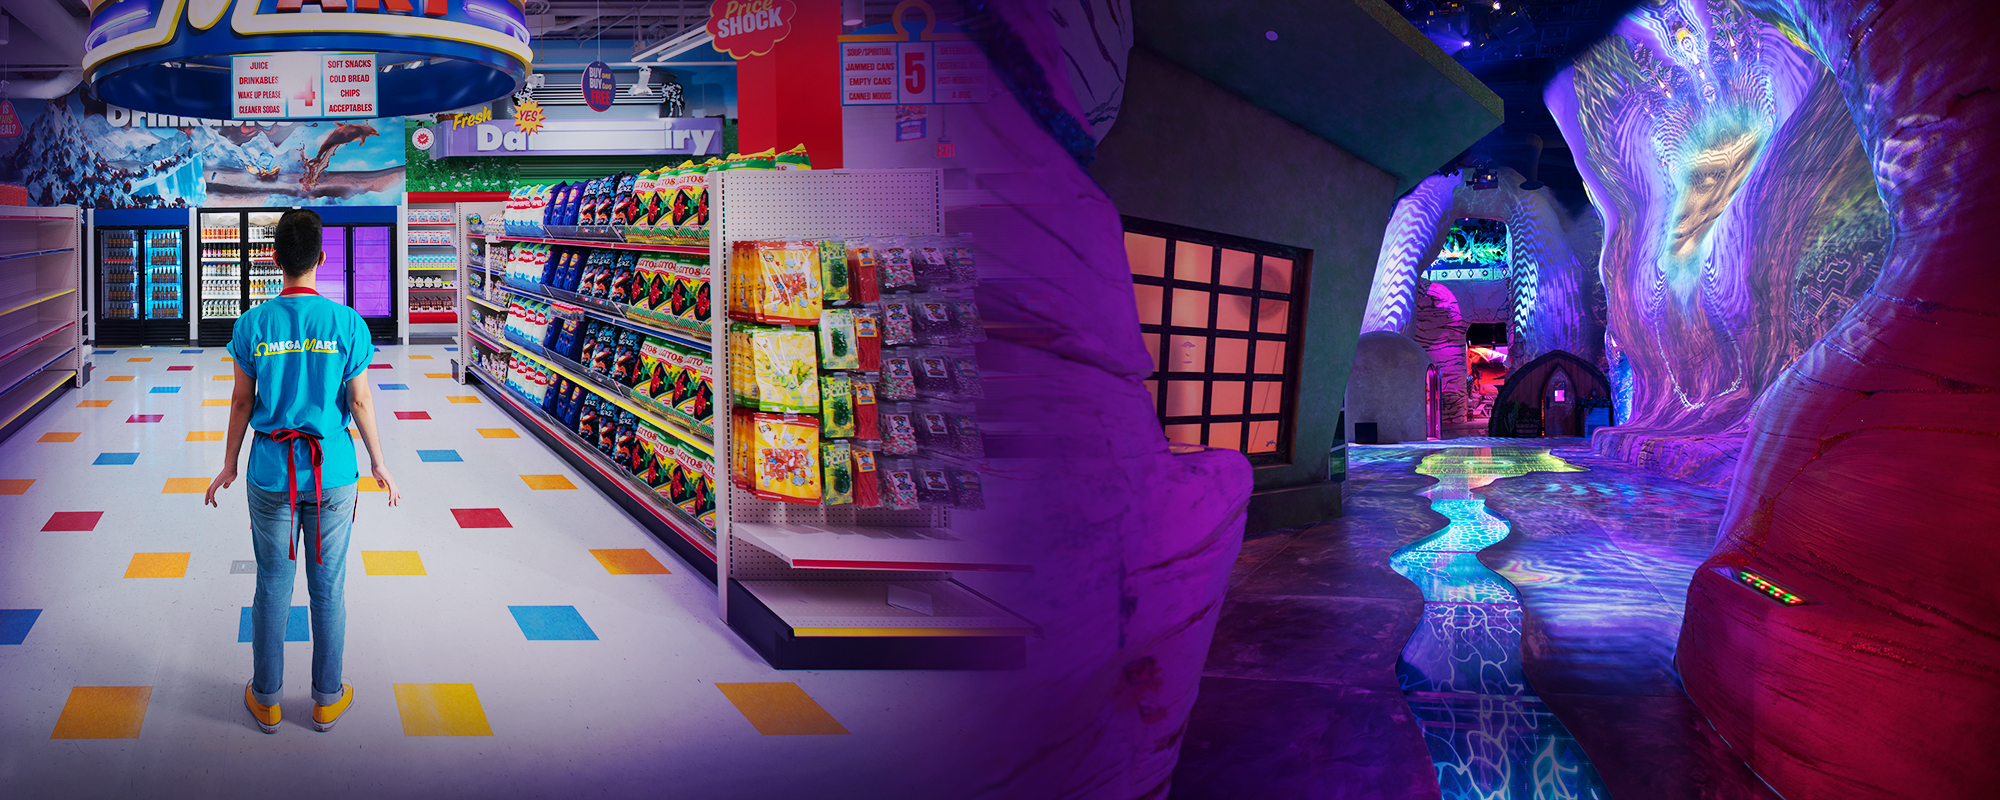 Meow Wolf's Omega Mart attraction